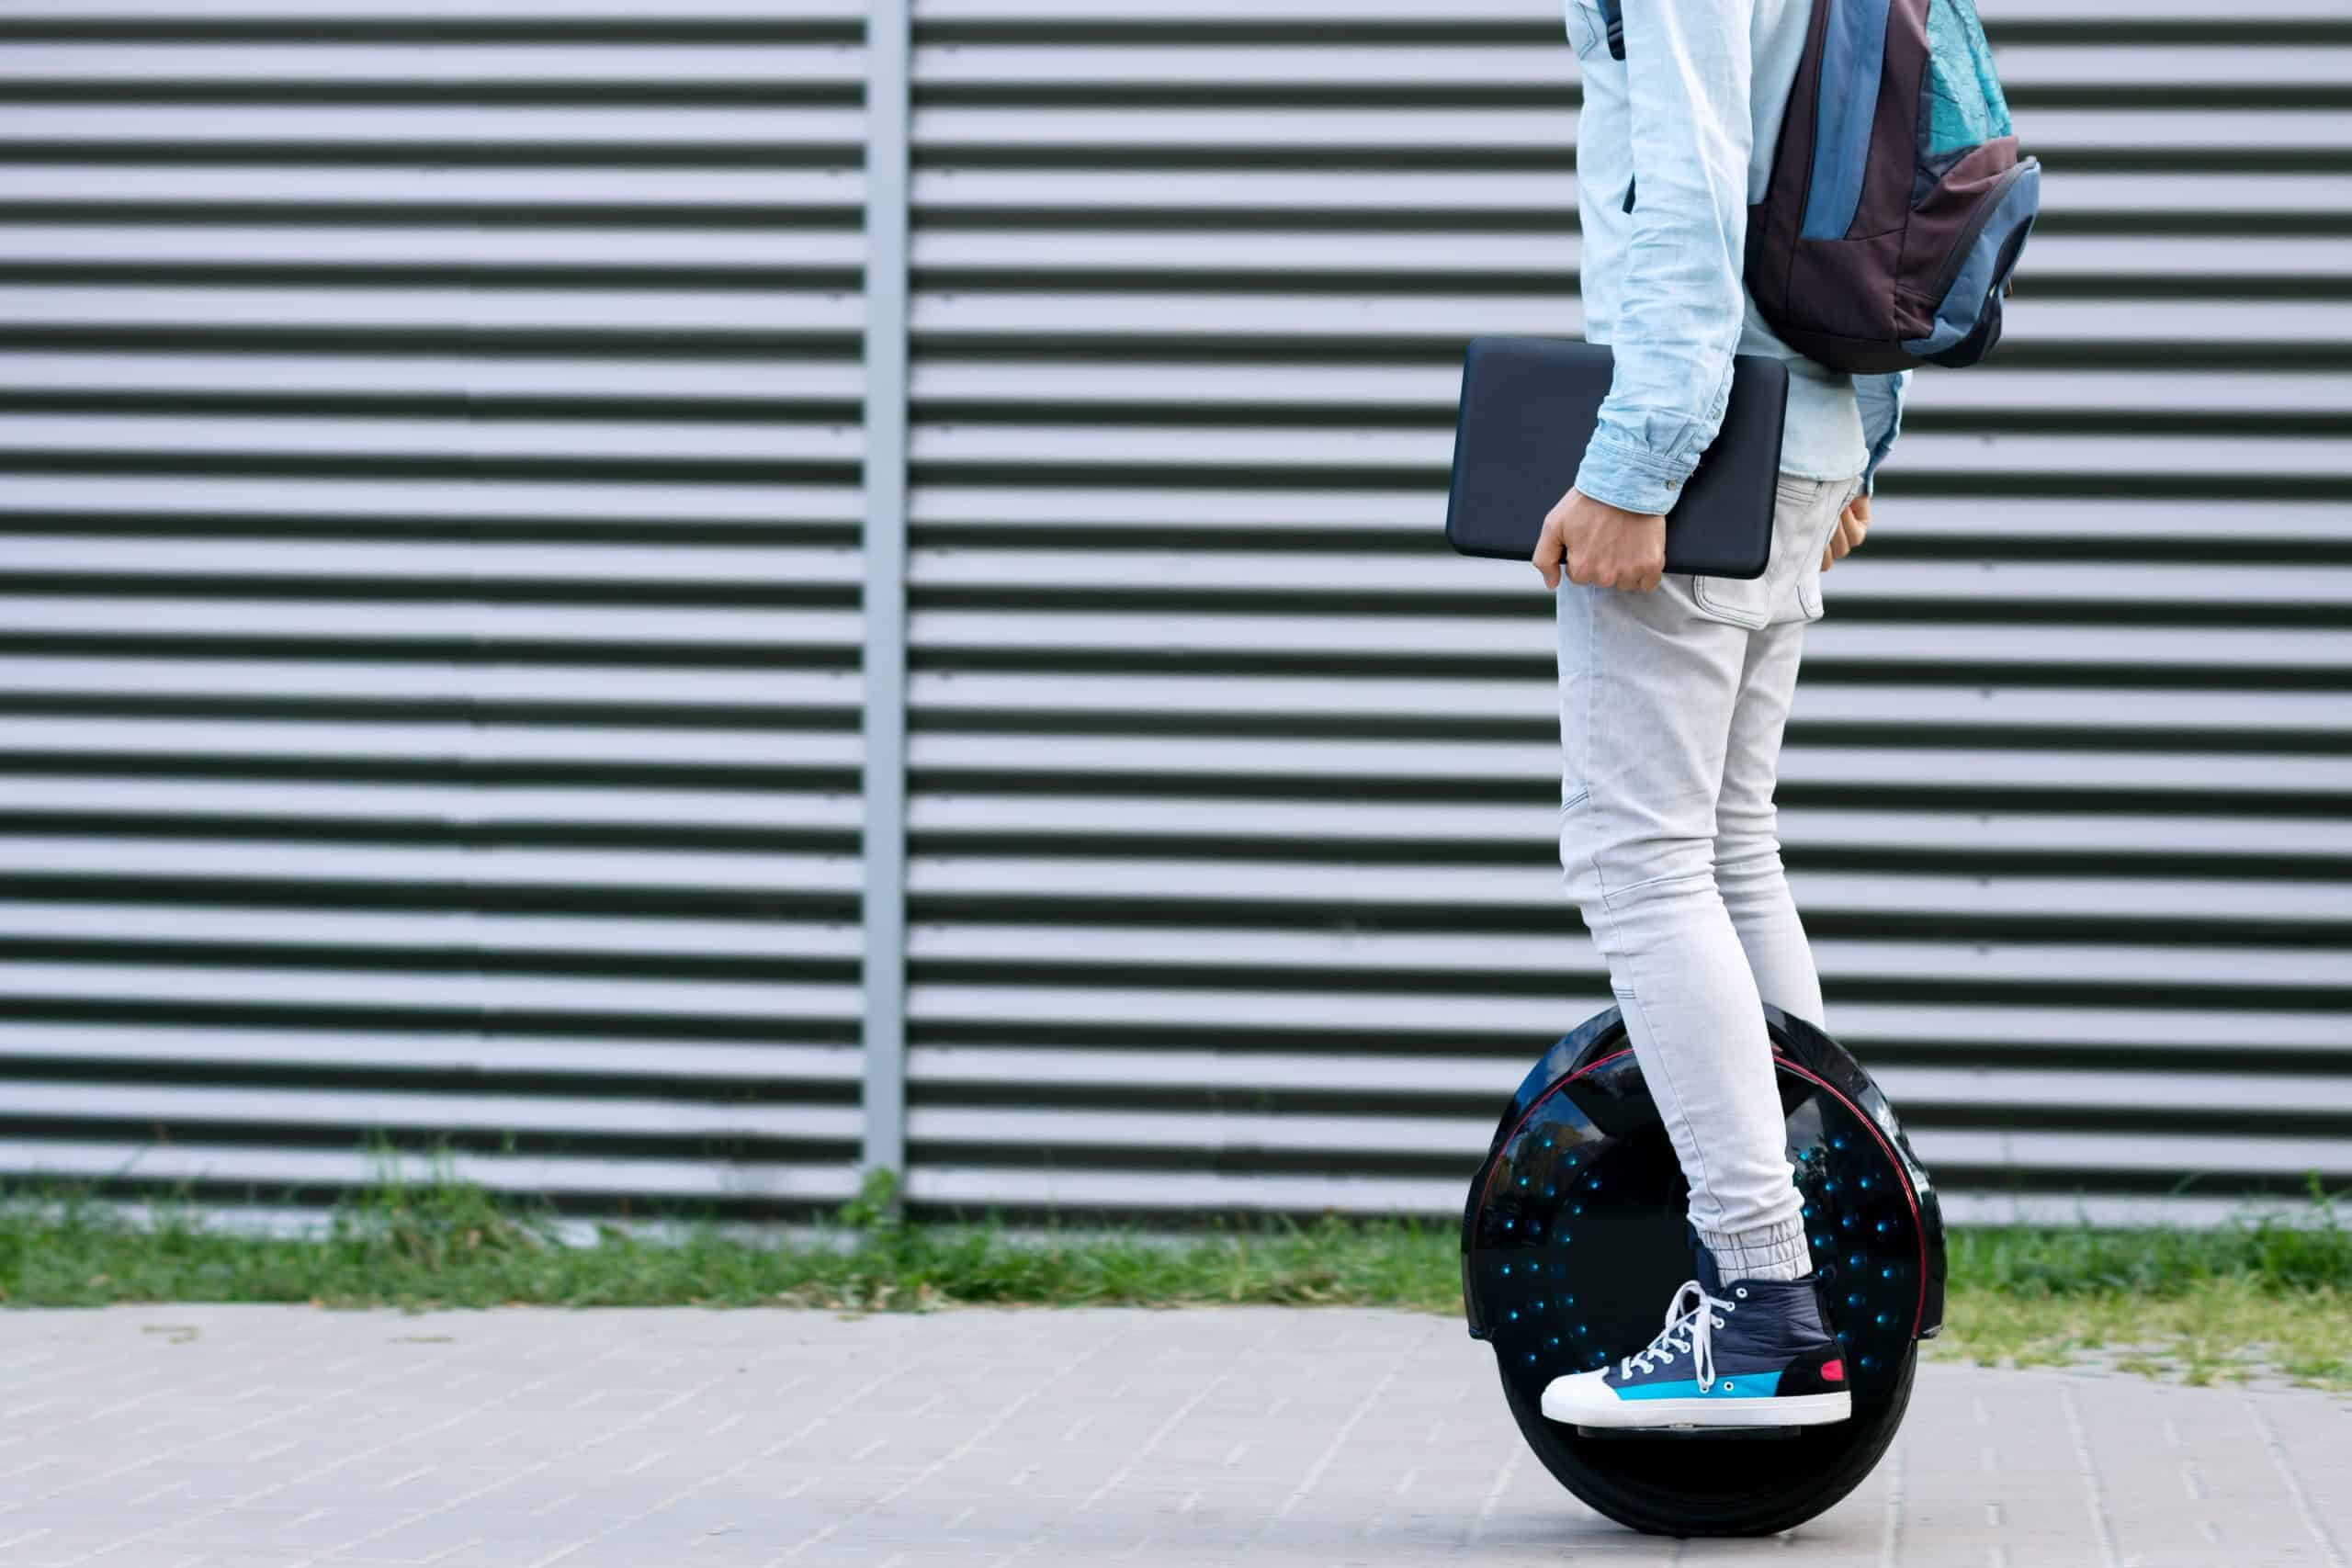 Why is Onewheel so expensive? Top Alternatives 6